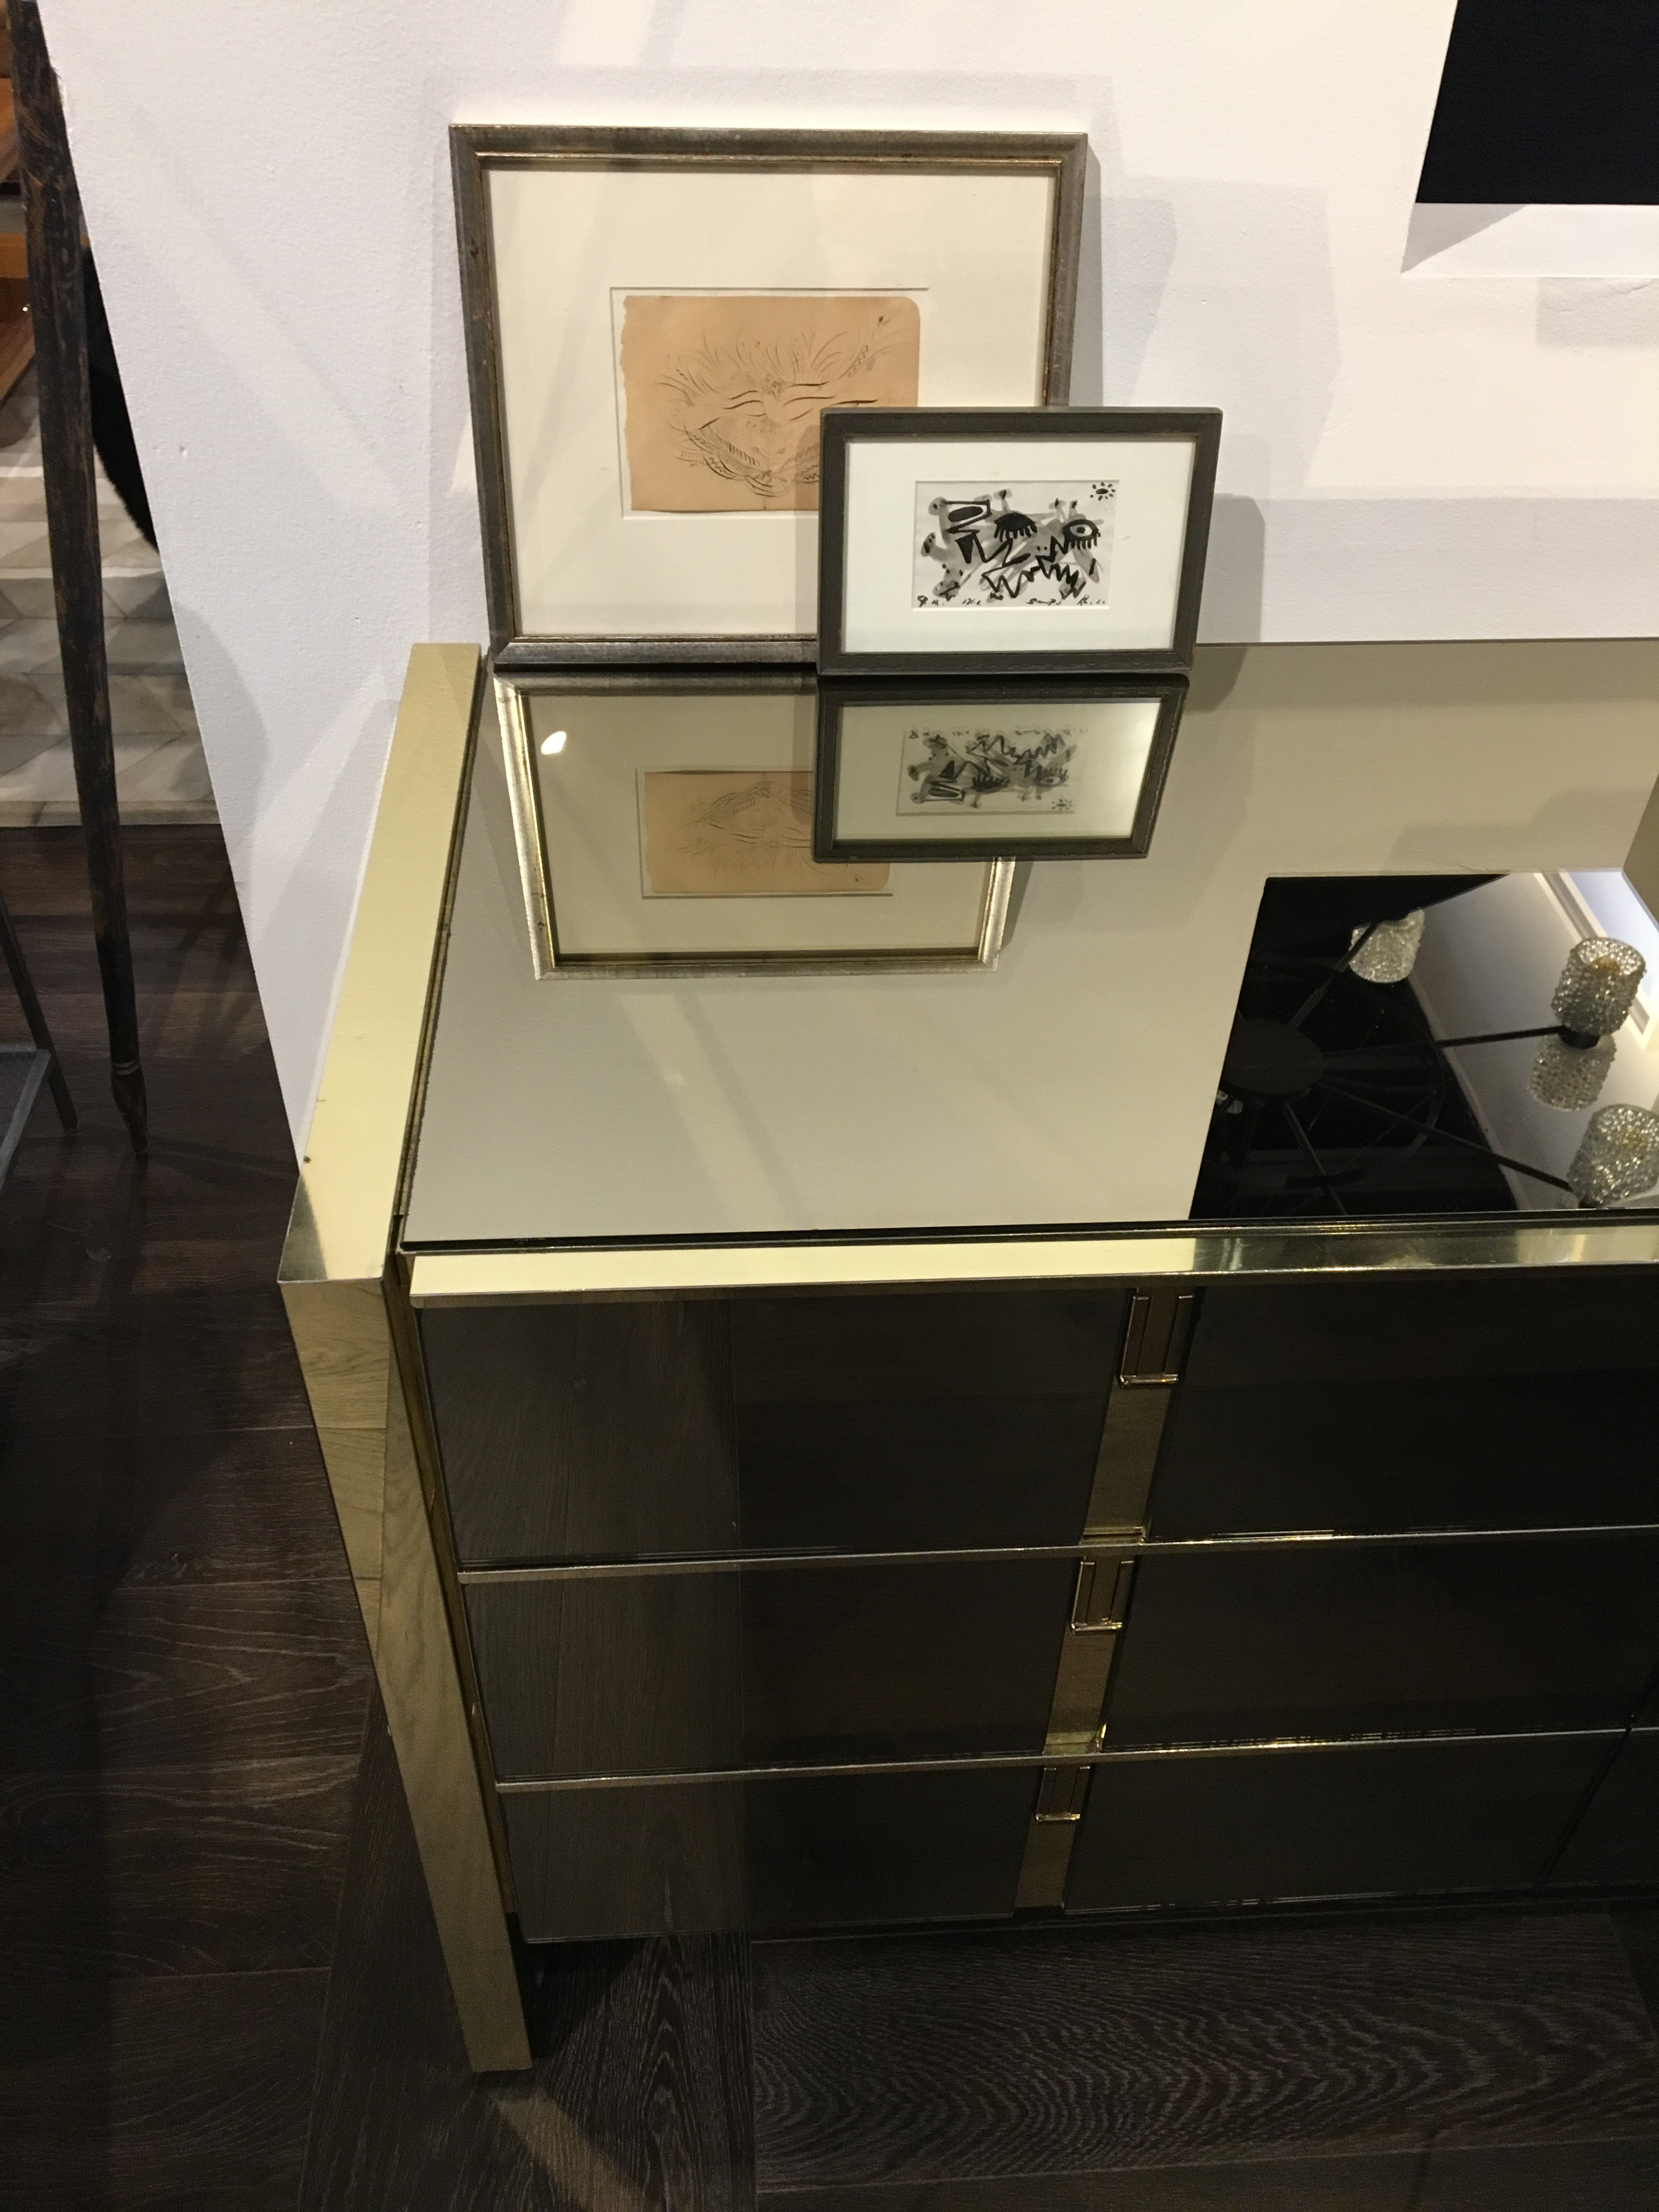 Superbe A 1970s Ello Bronze And Polished Metal Dresser With Nine Drawers. There Are  Some Dings